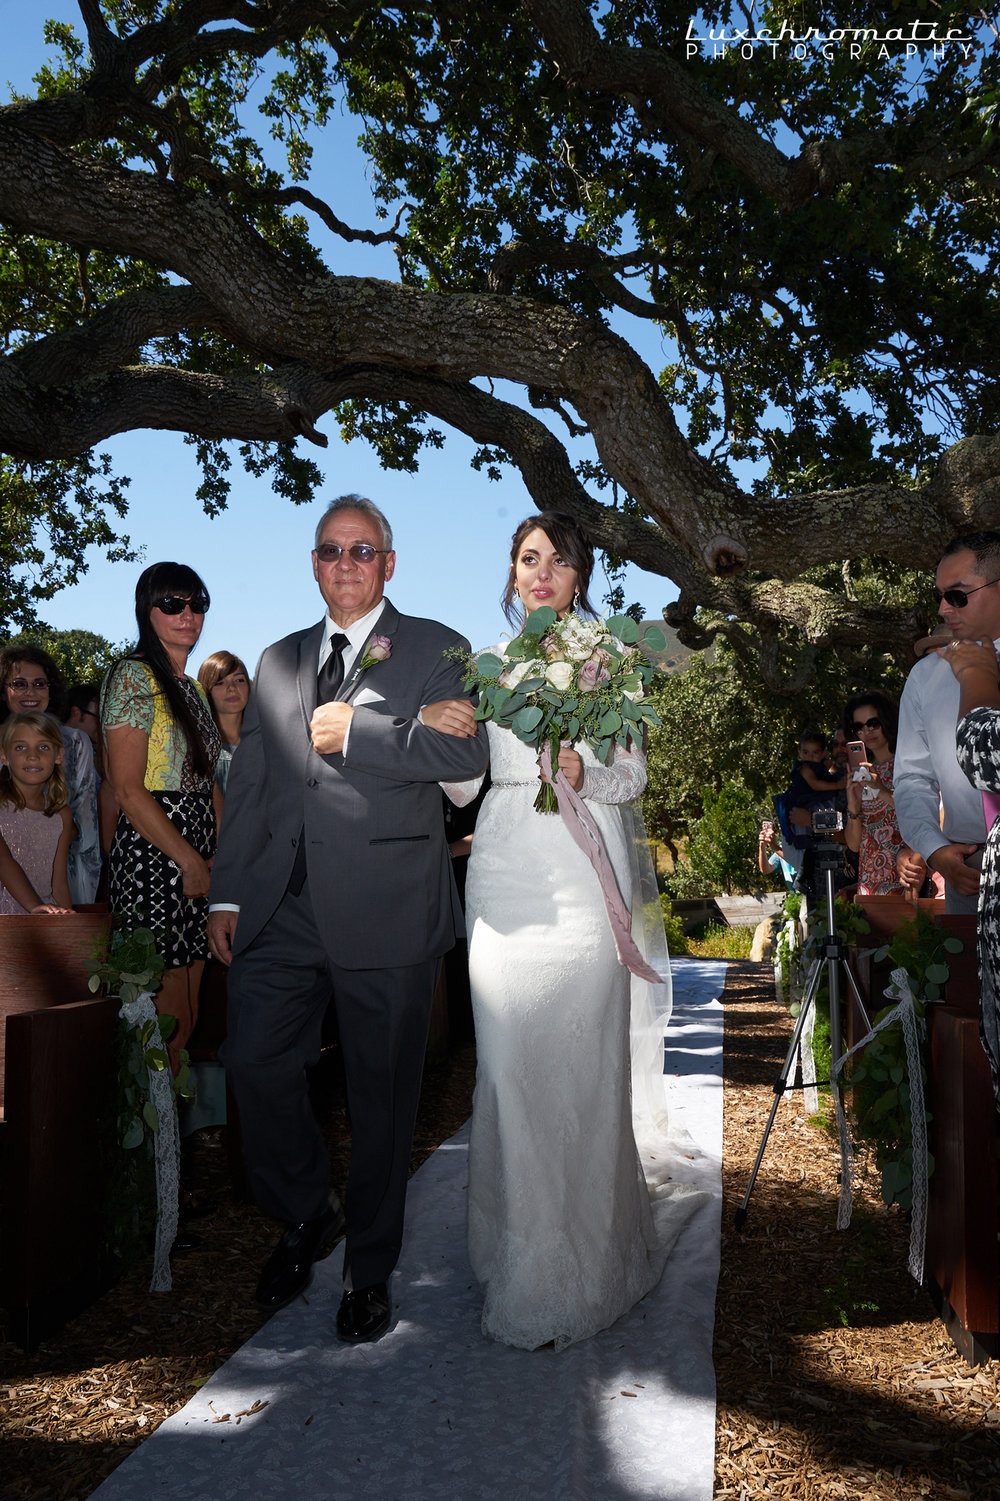 070817_Steph_Sil-San-Francisco-Bay-Area-Carmel-Valley-Monterey-Bay-California-Wedding-Los-Laureles-Lodge-Bride-Gown-Dress-Groom-Engaged-Knot-Bridesmaids-Luxchromatic-Portrait-Sony-Alpha-a7Rii-Interfit-Profoto-Best-Photographer-Photography-0345 copy.jpg